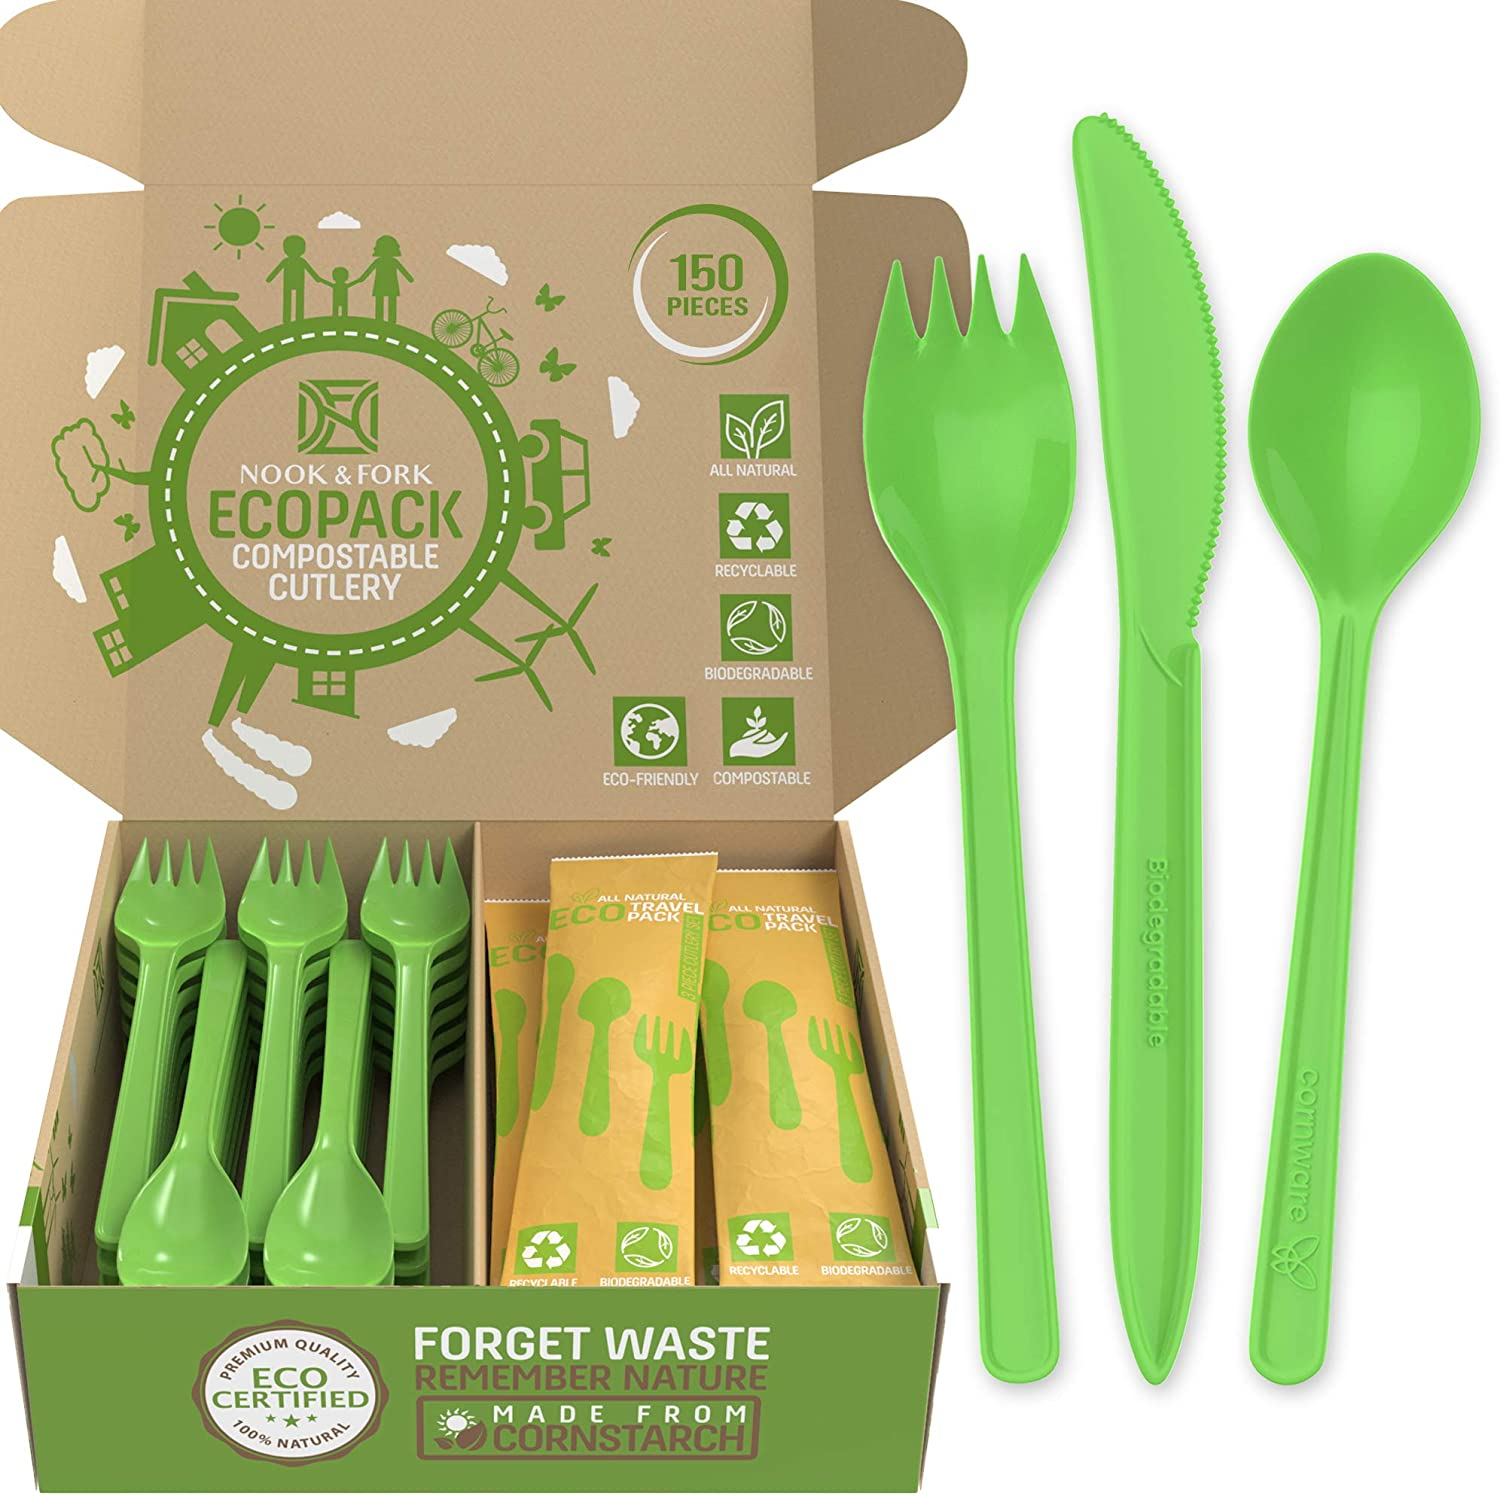 Ecosporks Compostable Cutlery Set - 120 Sporks (Compostable Forks And Spoons in One Utensil) + 10 Bags Packed with Biodegradable Forks, Knives, and Spoons by Nook & Fork